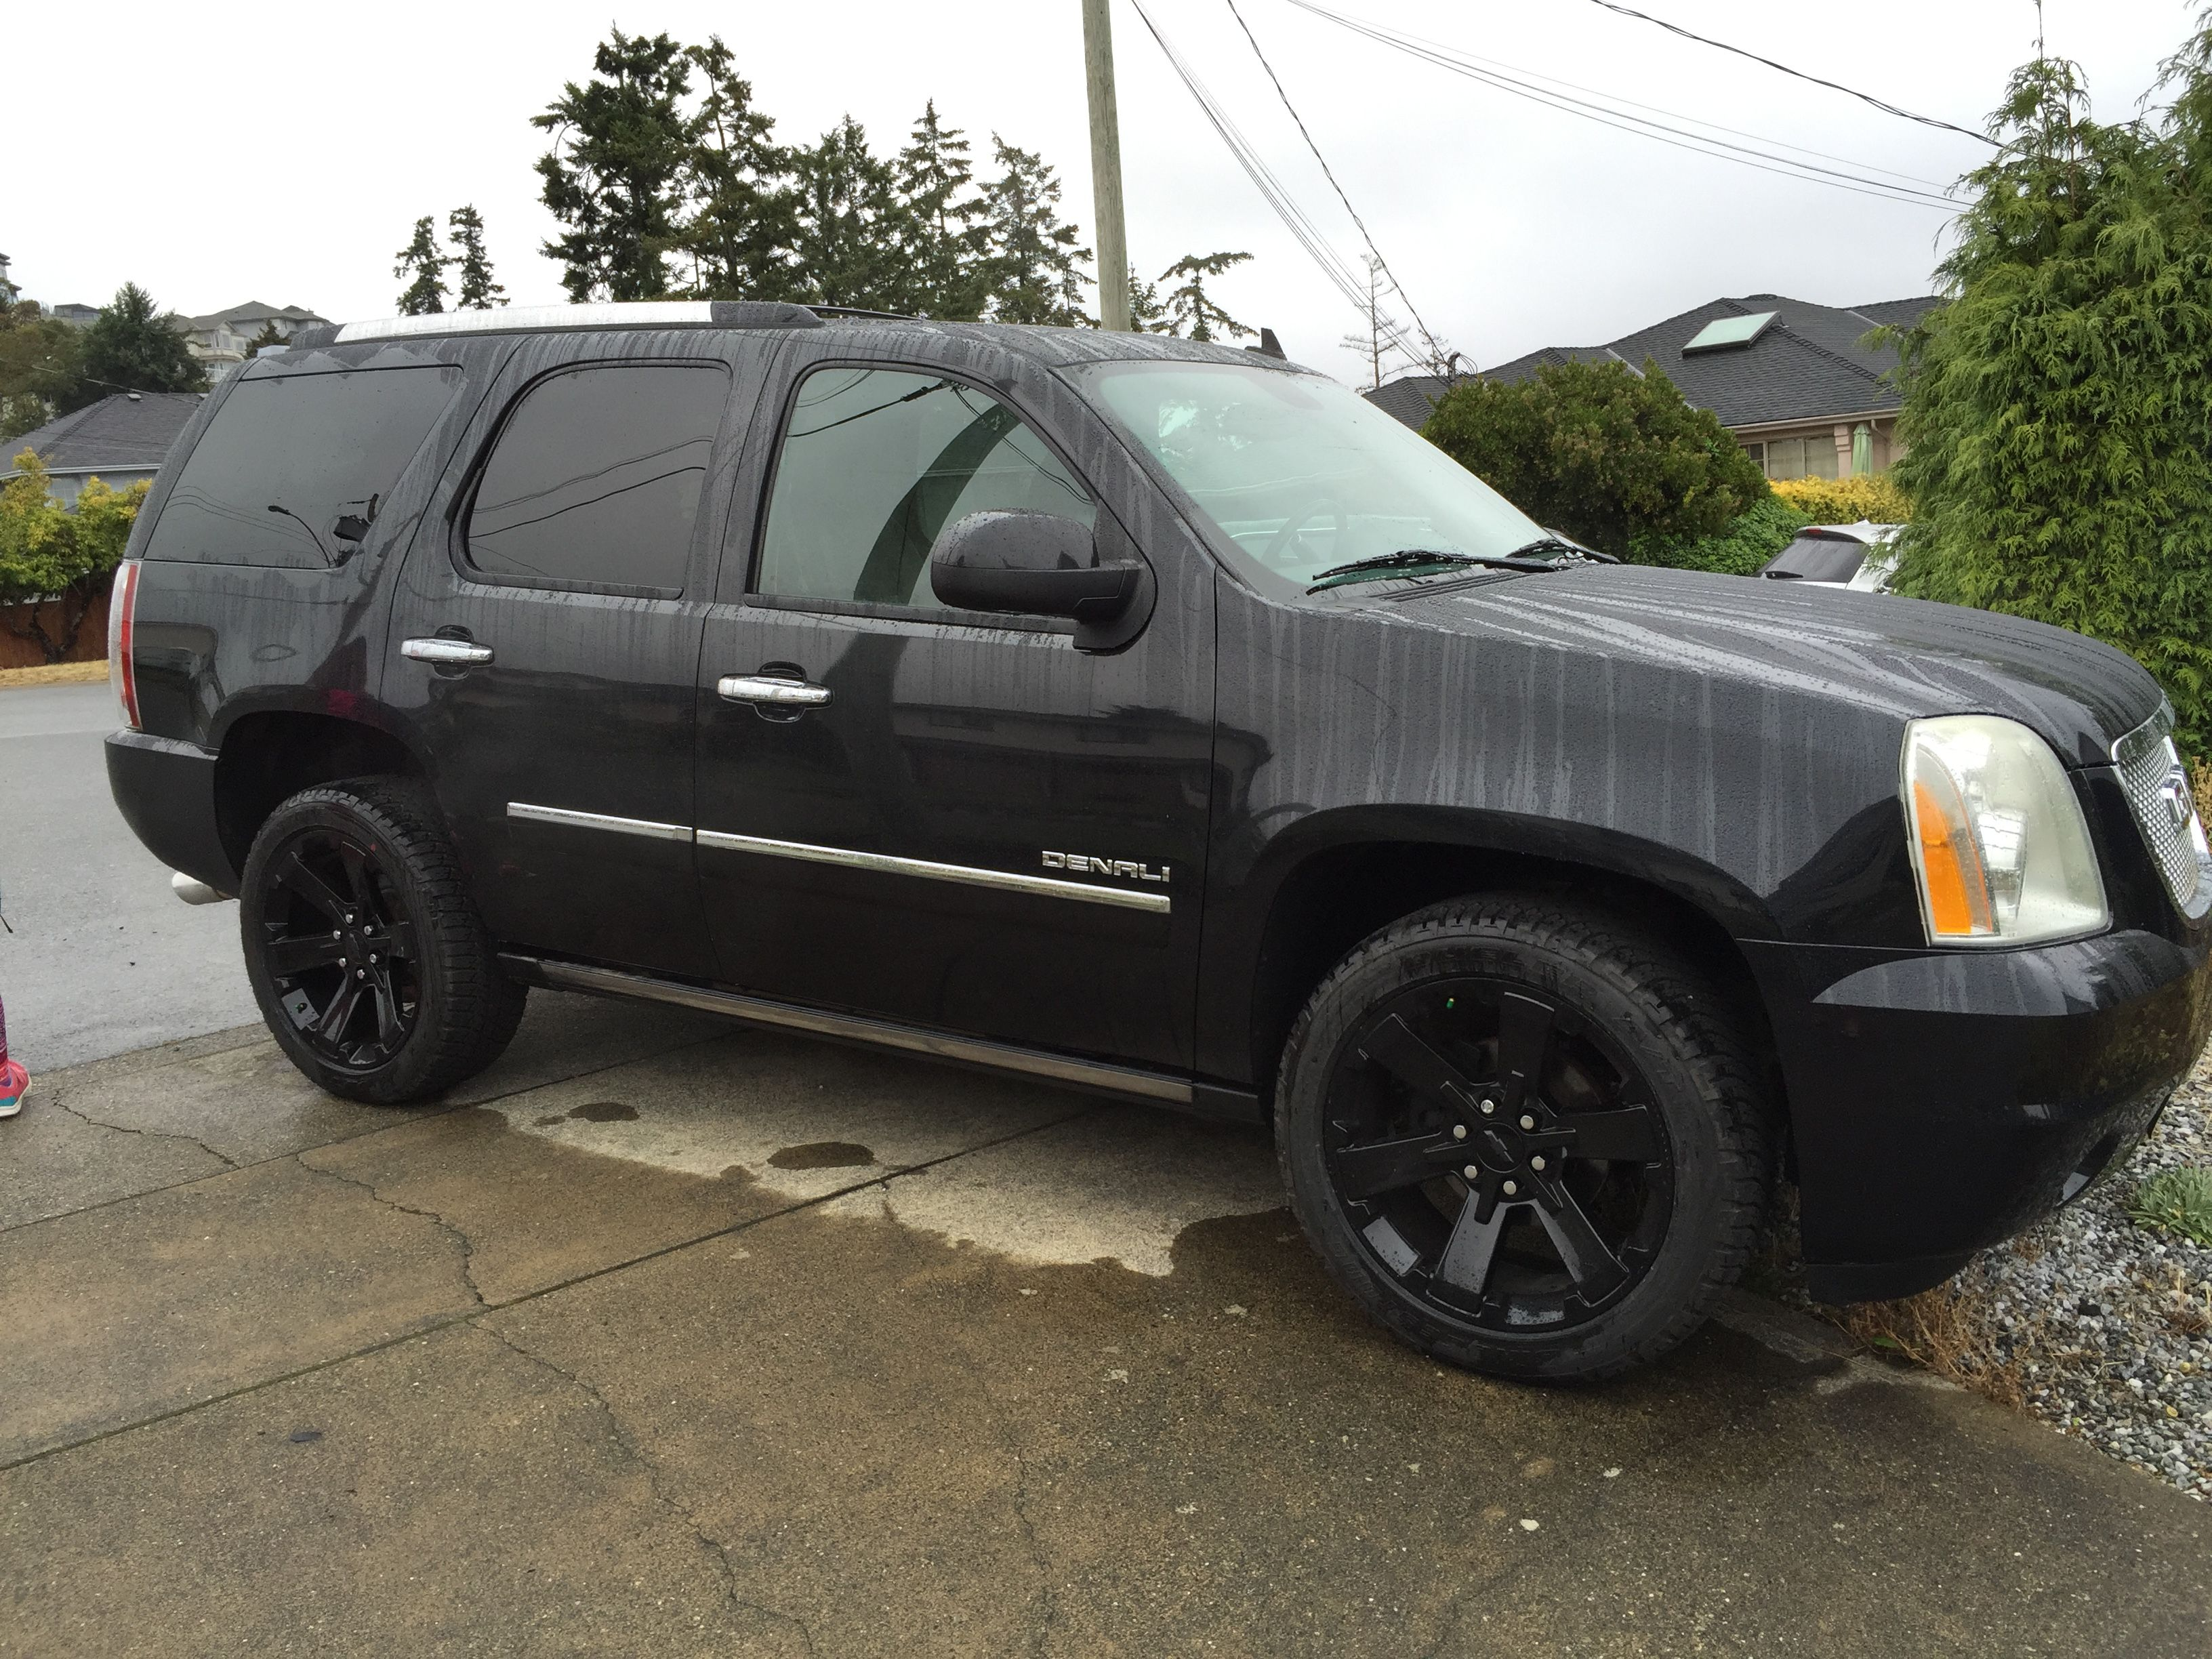 2011 Gmc Yukon Denali With 2016 Chevy 22 Rims Gmc Yukon Yukon